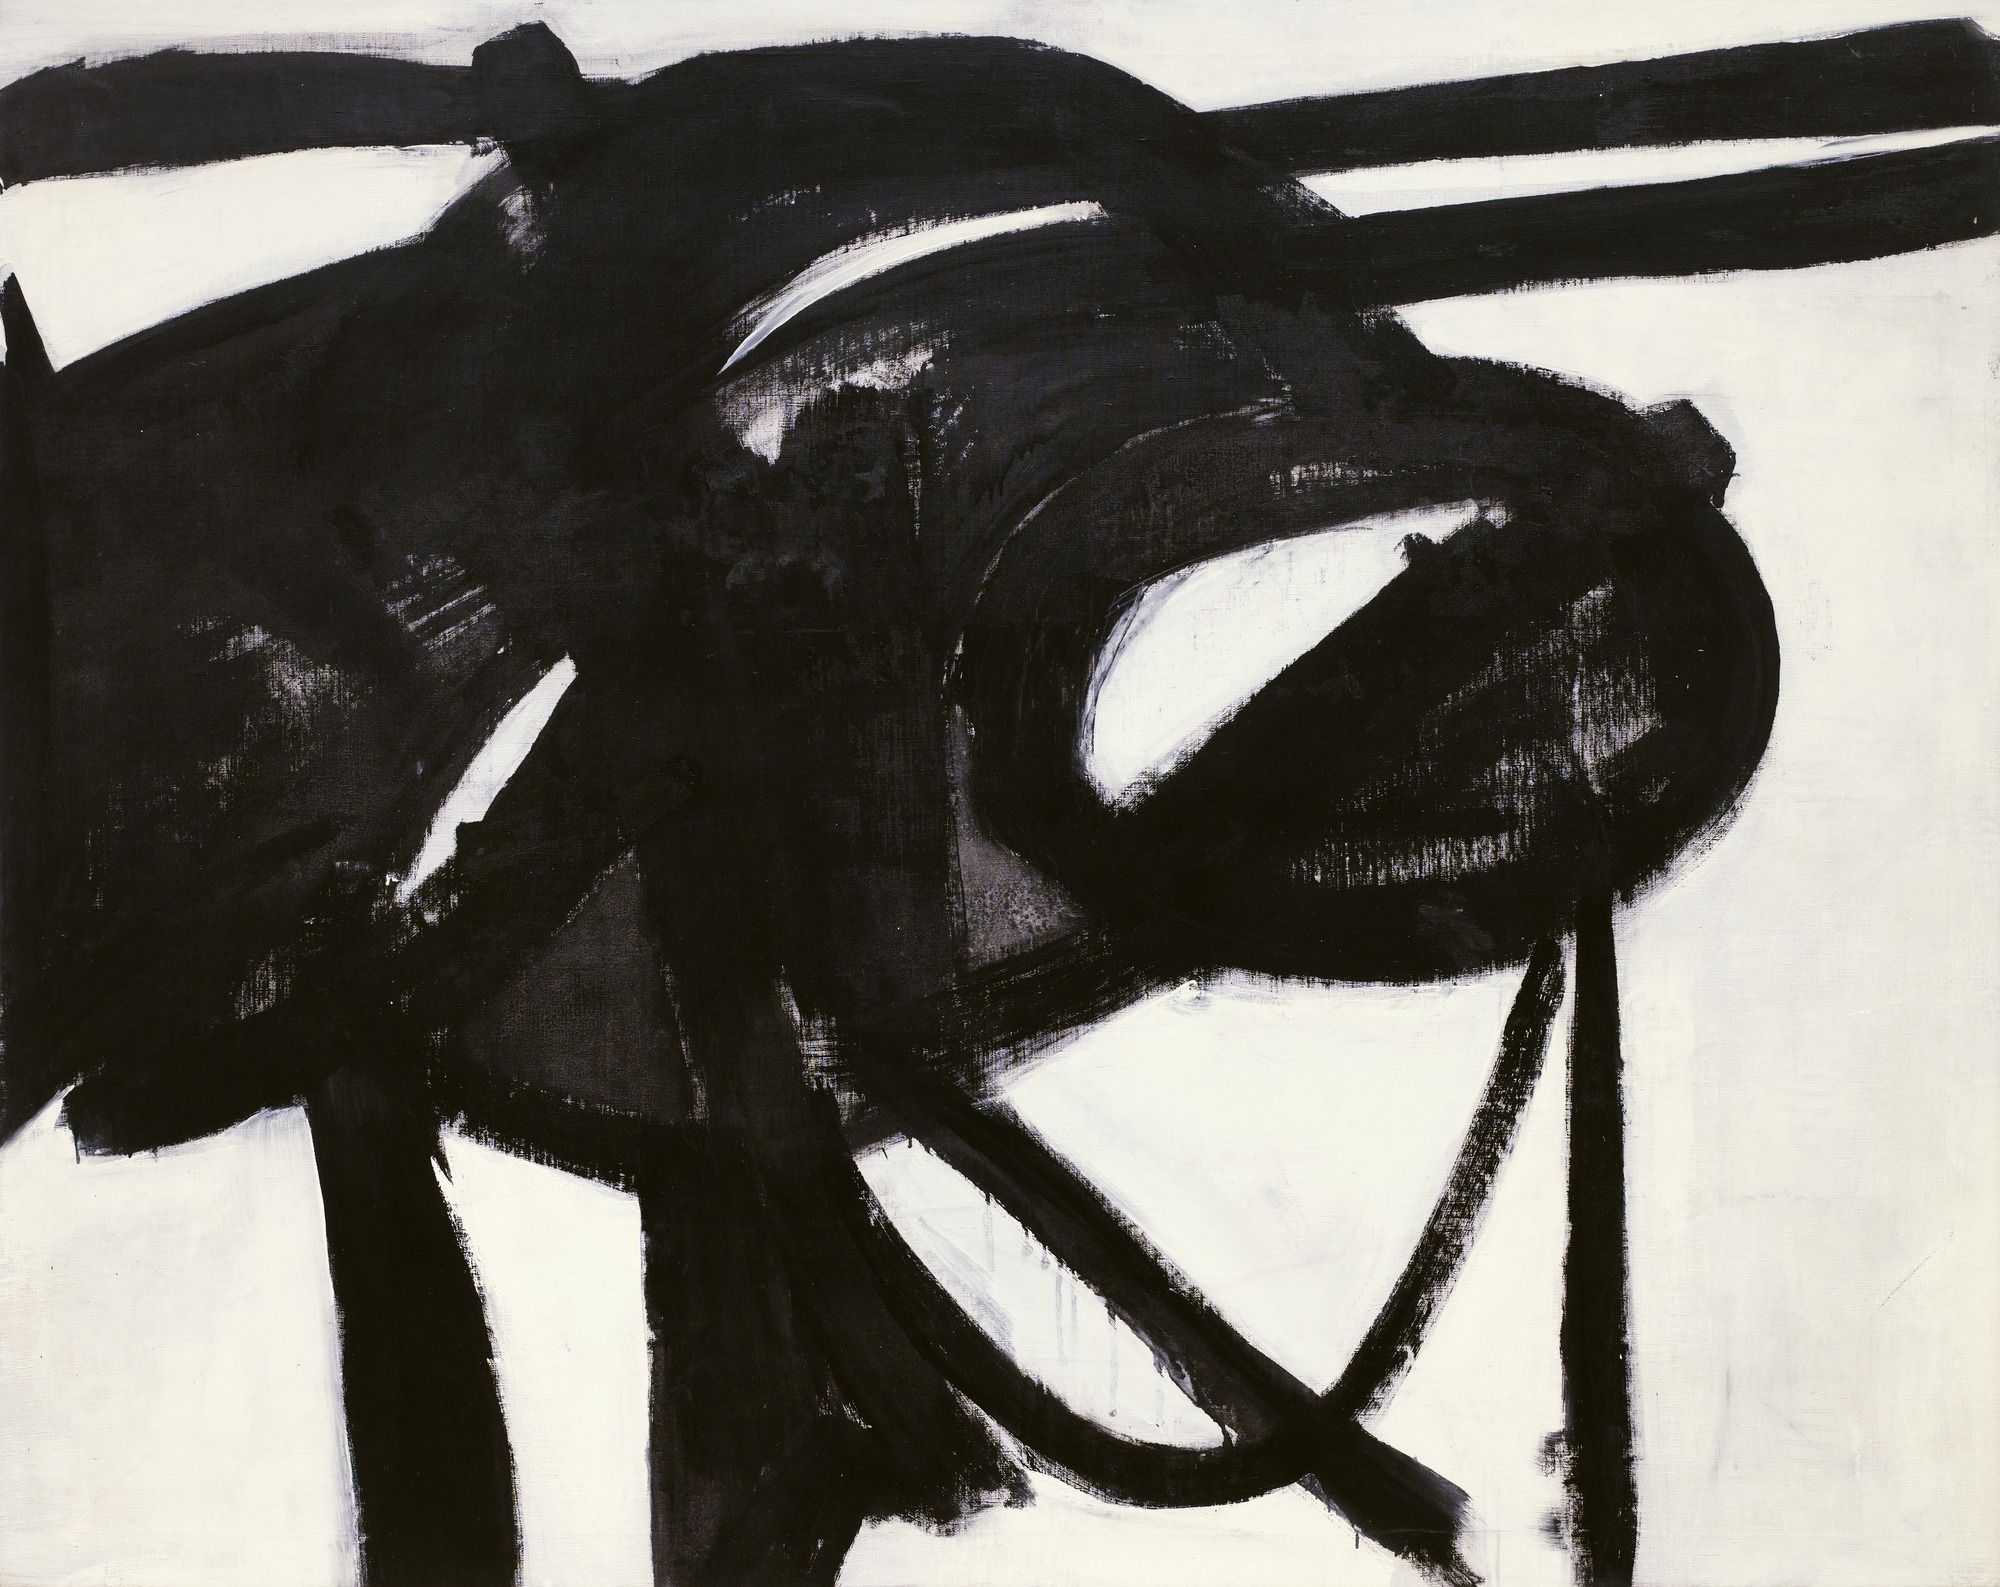 Franz Kline: Chief, oil on canvas, 1.48×1.87 m, 1950 (New York, Museum of Modern Art); © 2007 The Franz Kline Estate/Artists Rights Society (ARS), New York, courtesy of The Museum of Modern Art, New York